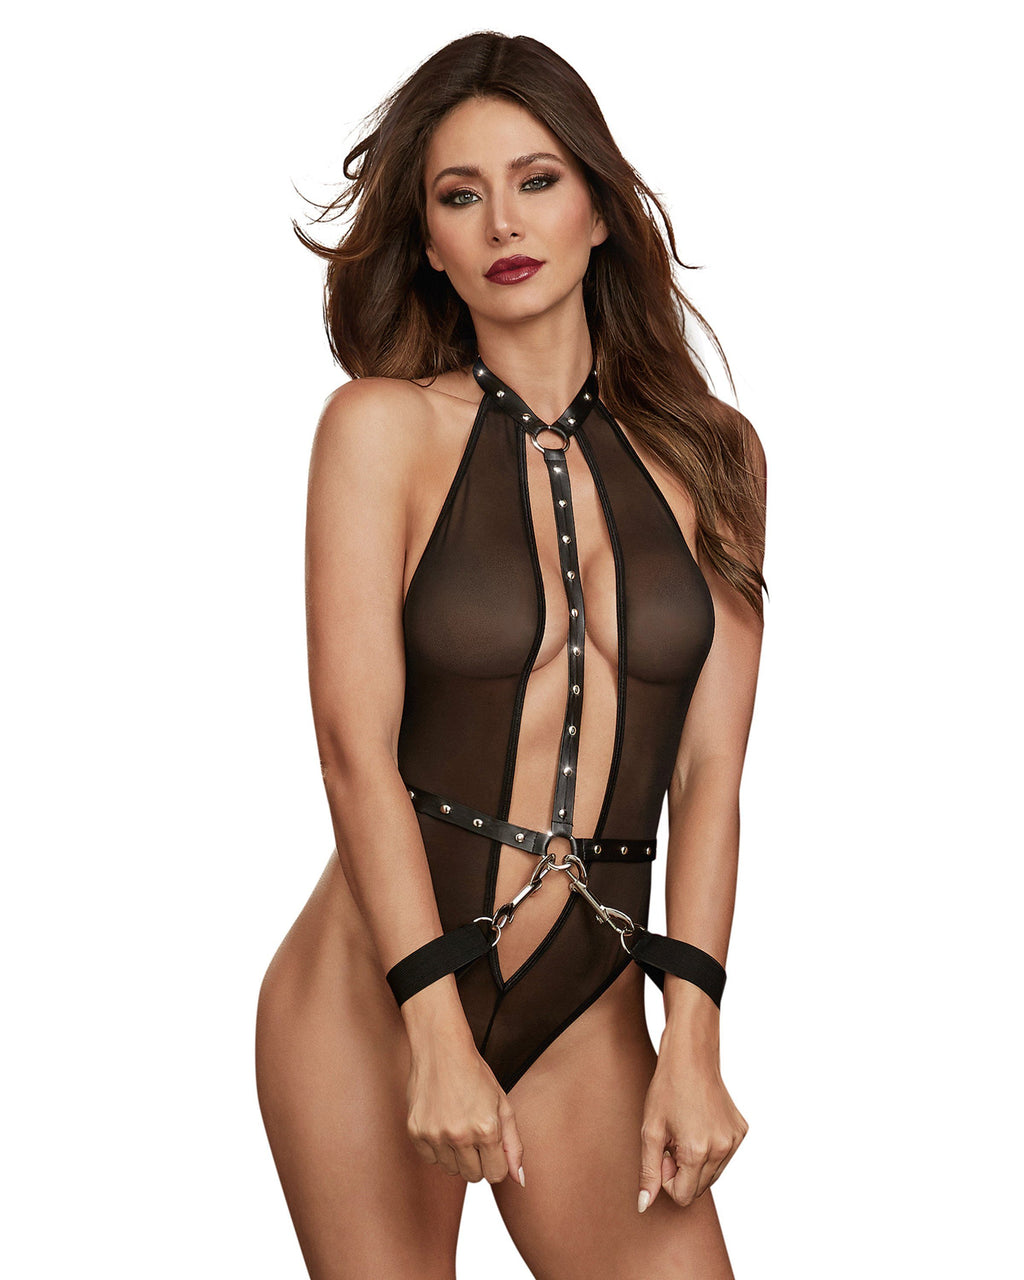 Teddy with Clasped Wrist Restraints Play Set Fetish Dreamgirl International